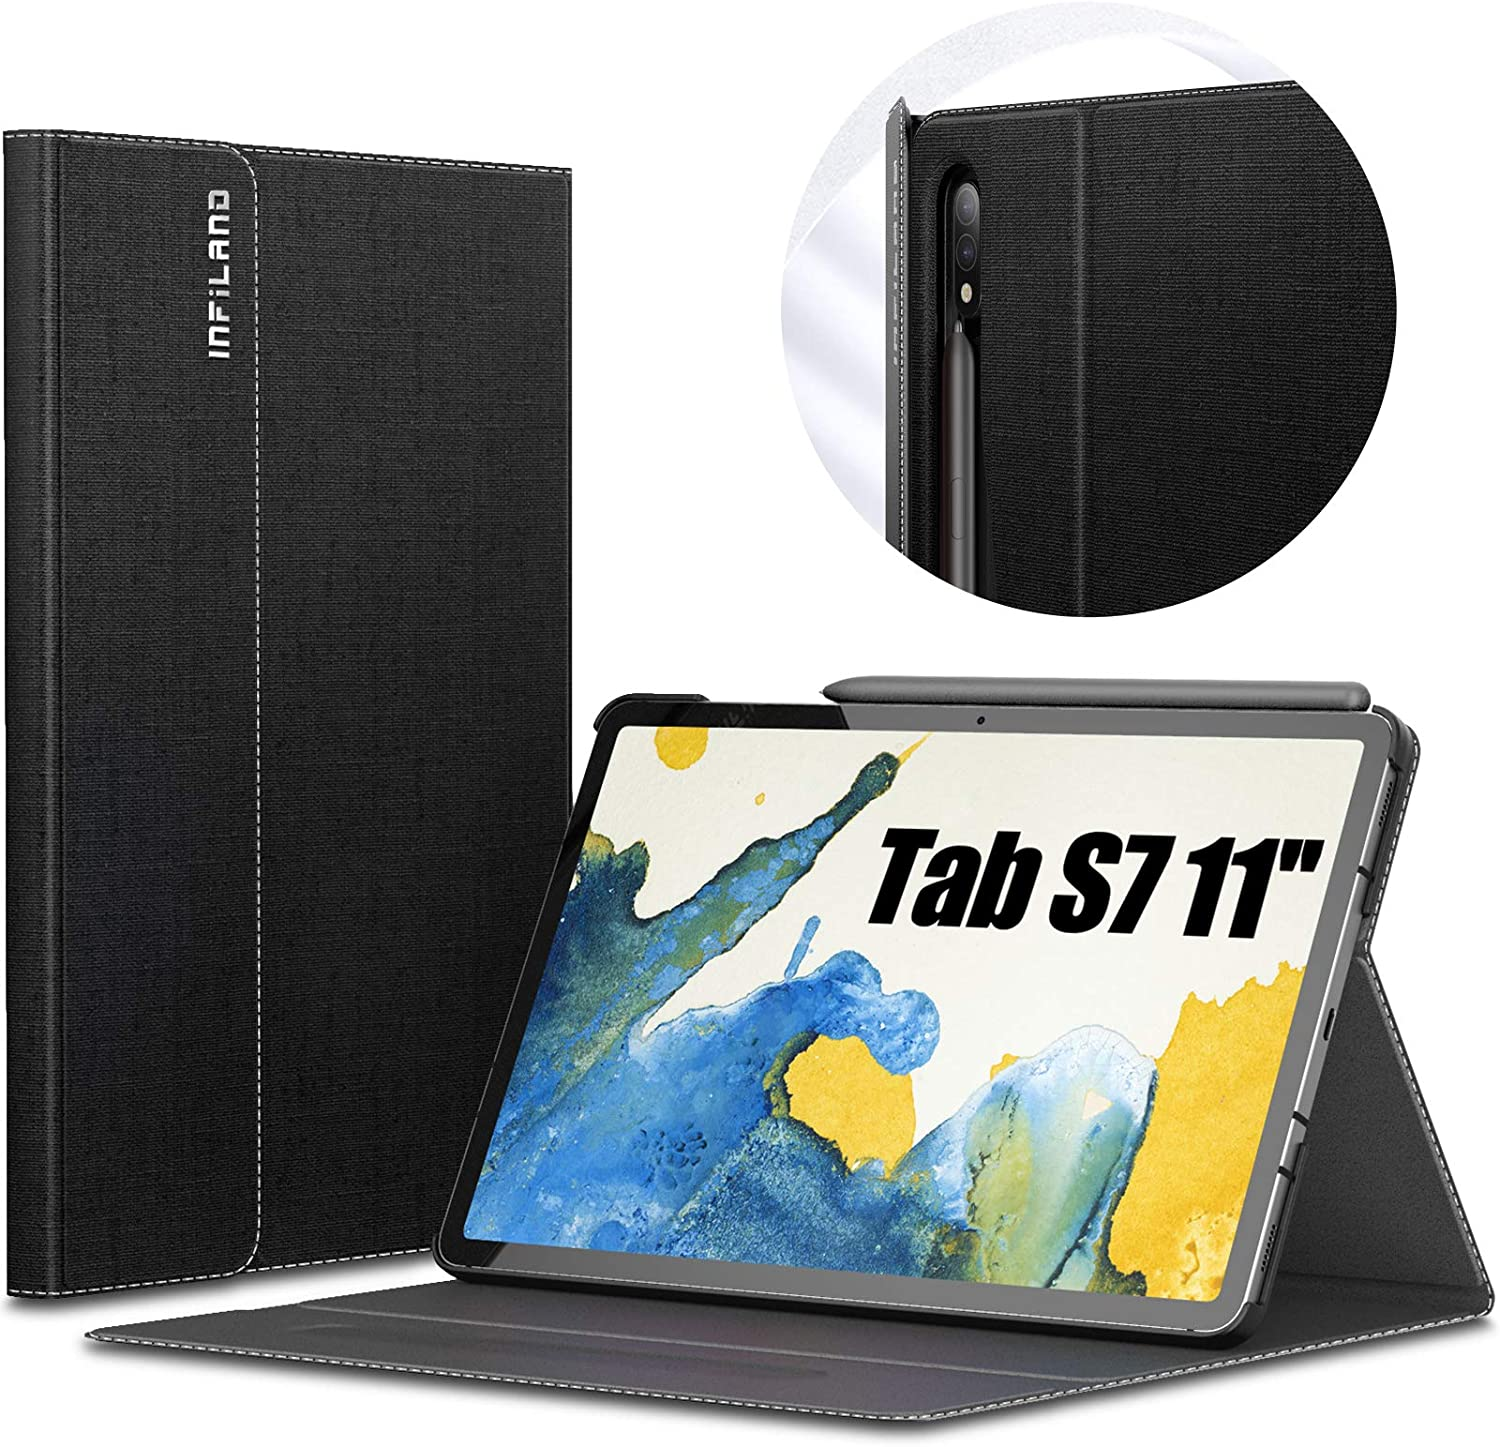 INFILAND Galaxy Tab S7 Case, Multiple Angle Stand Cover Compatible with Samsung Galaxy Tab S7 11-inch SM-T870/T875/T876 2020 Release Tablet [Auto Wake/Sleep], Black